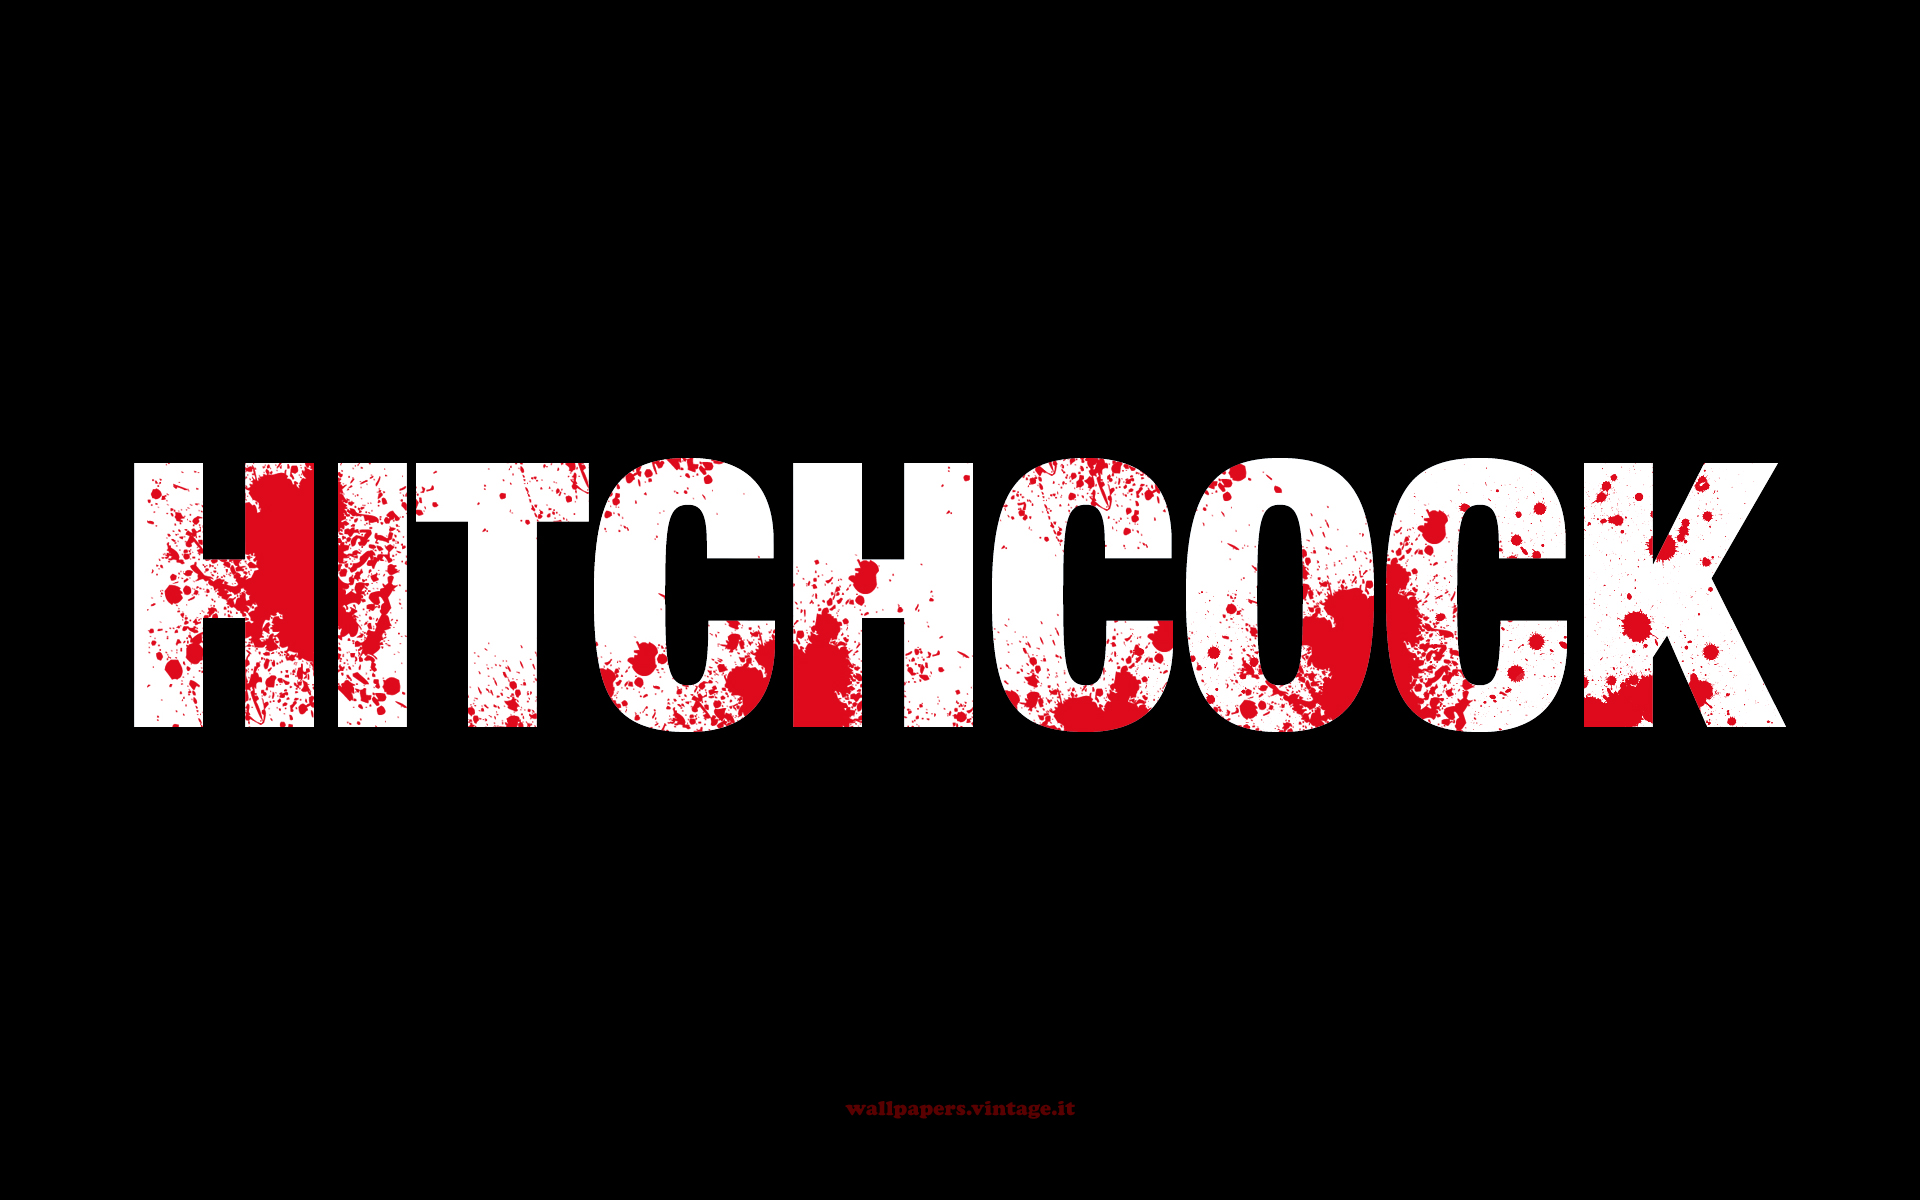 Iphone X Motion Wallpaper Hitchcock Psycho Wallpapers Hitchcock Psycho Stock Photos